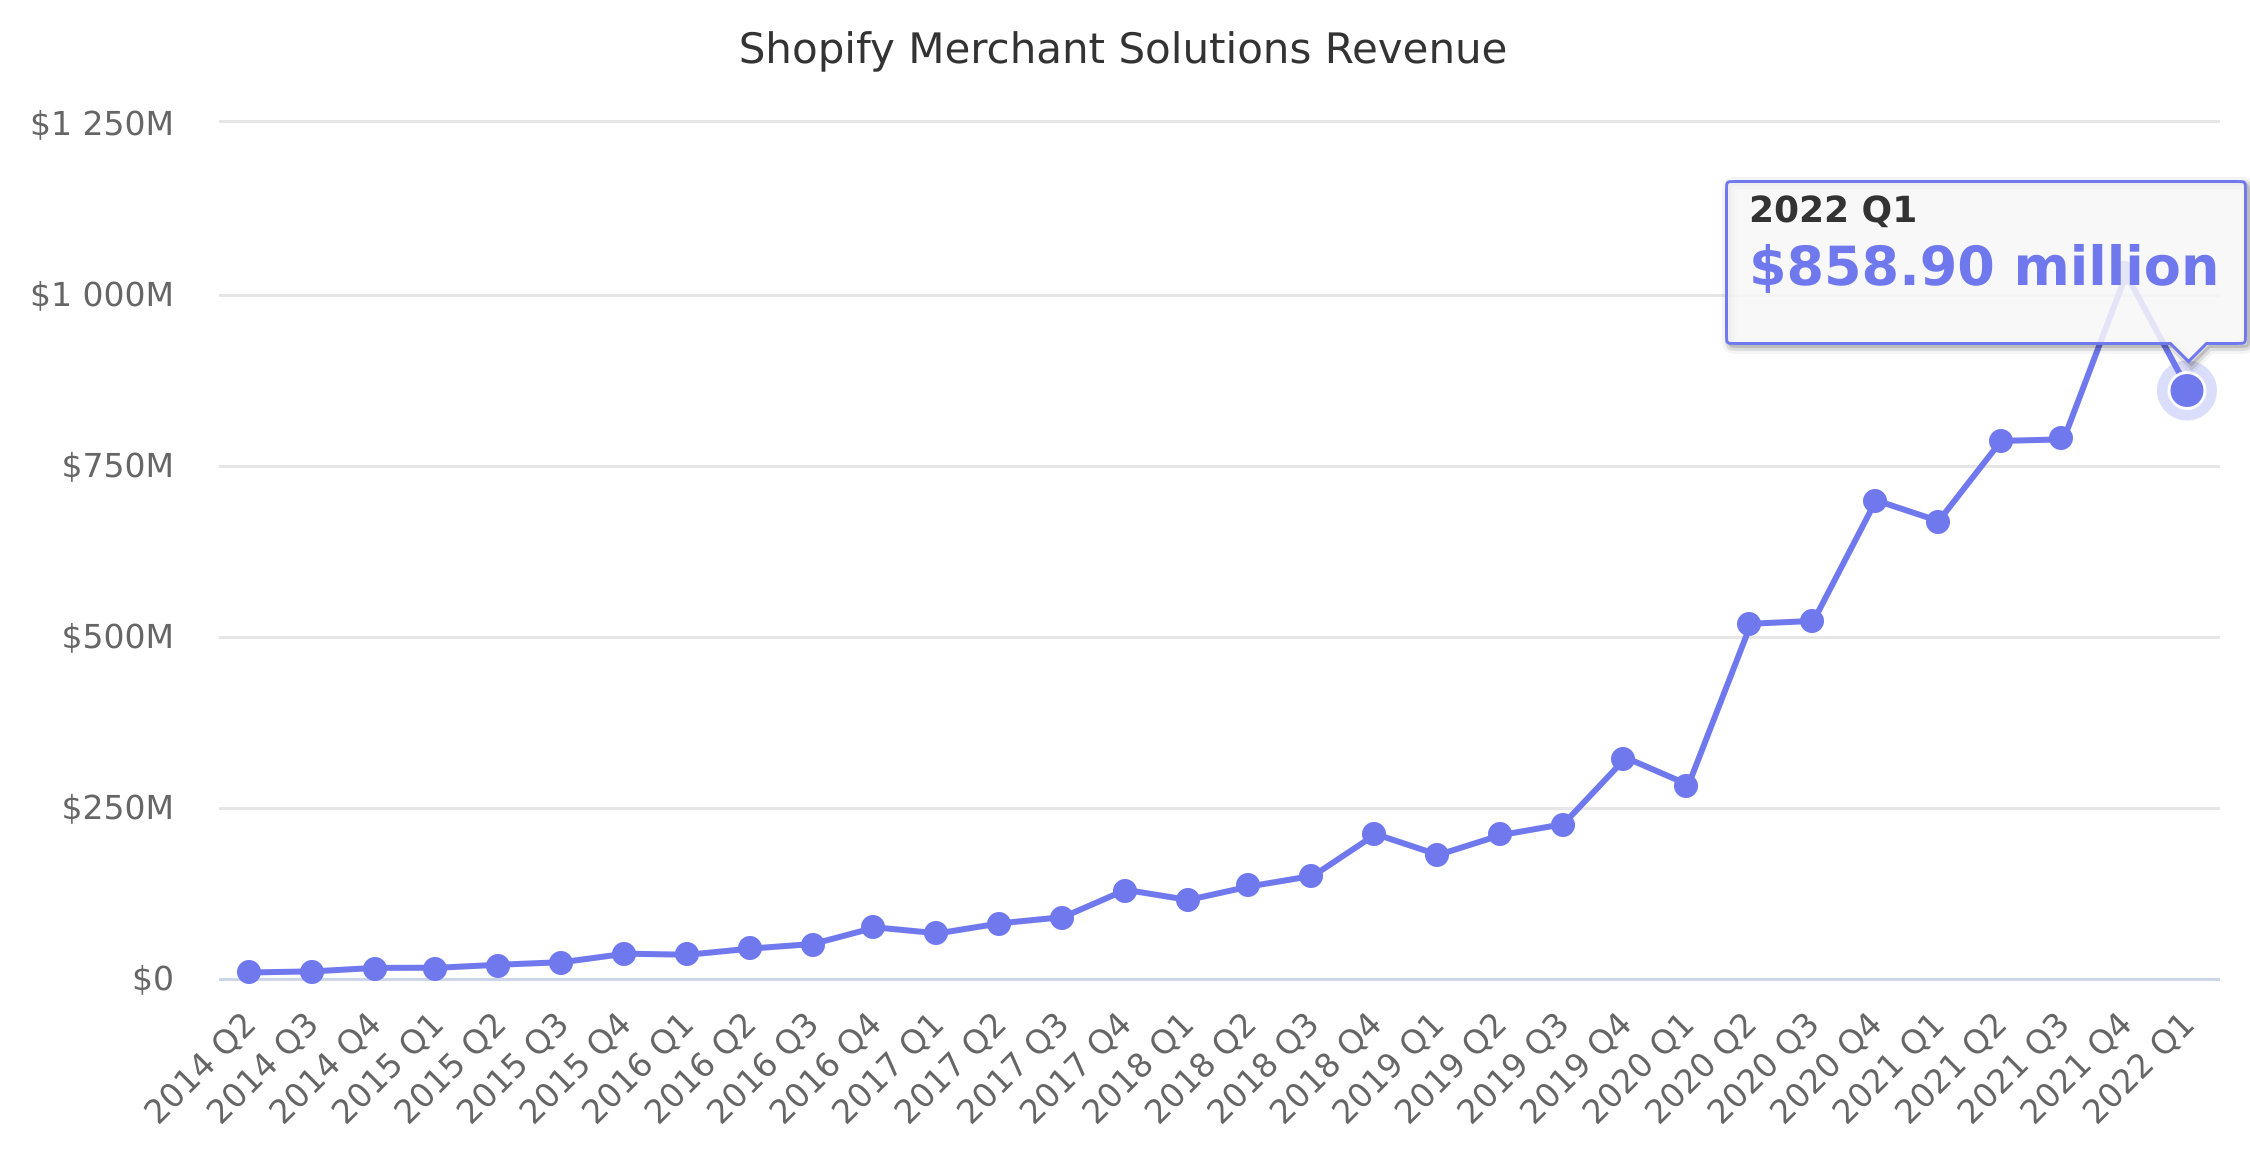 Shopify Merchant Solutions Revenue 2014-2021